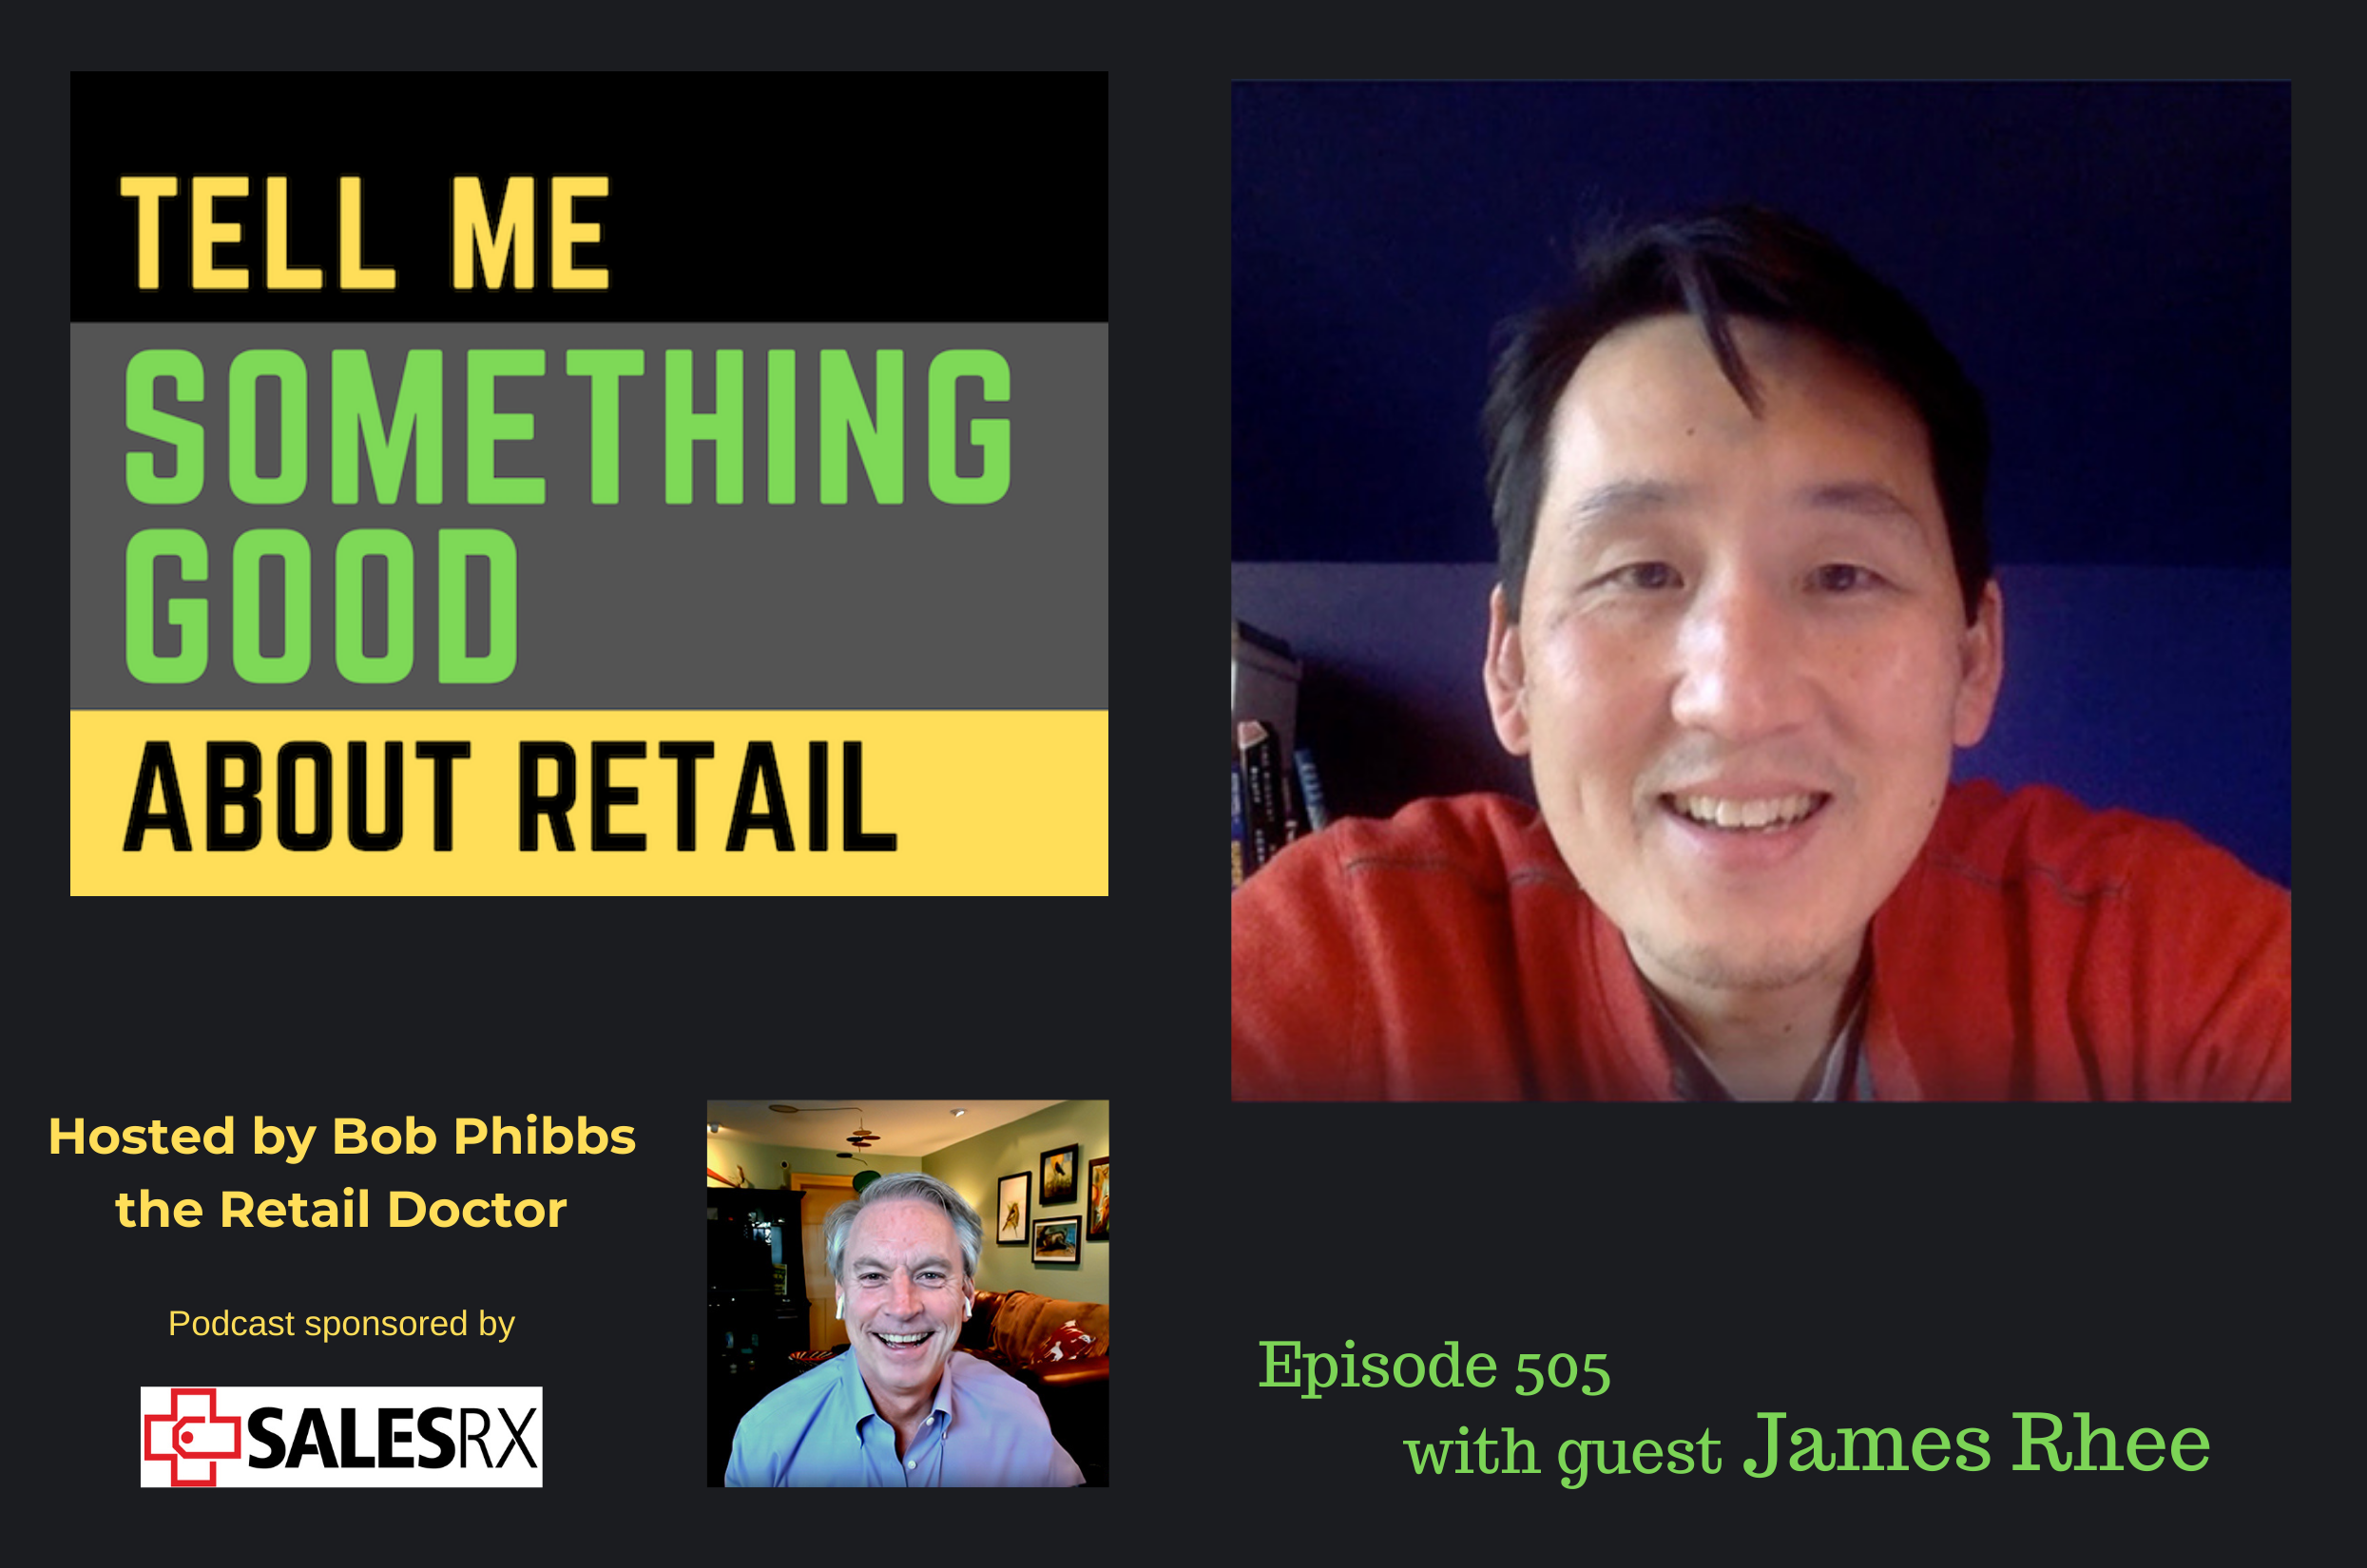 James Rhee podcast with Bob Phibbs the Retail Doctor